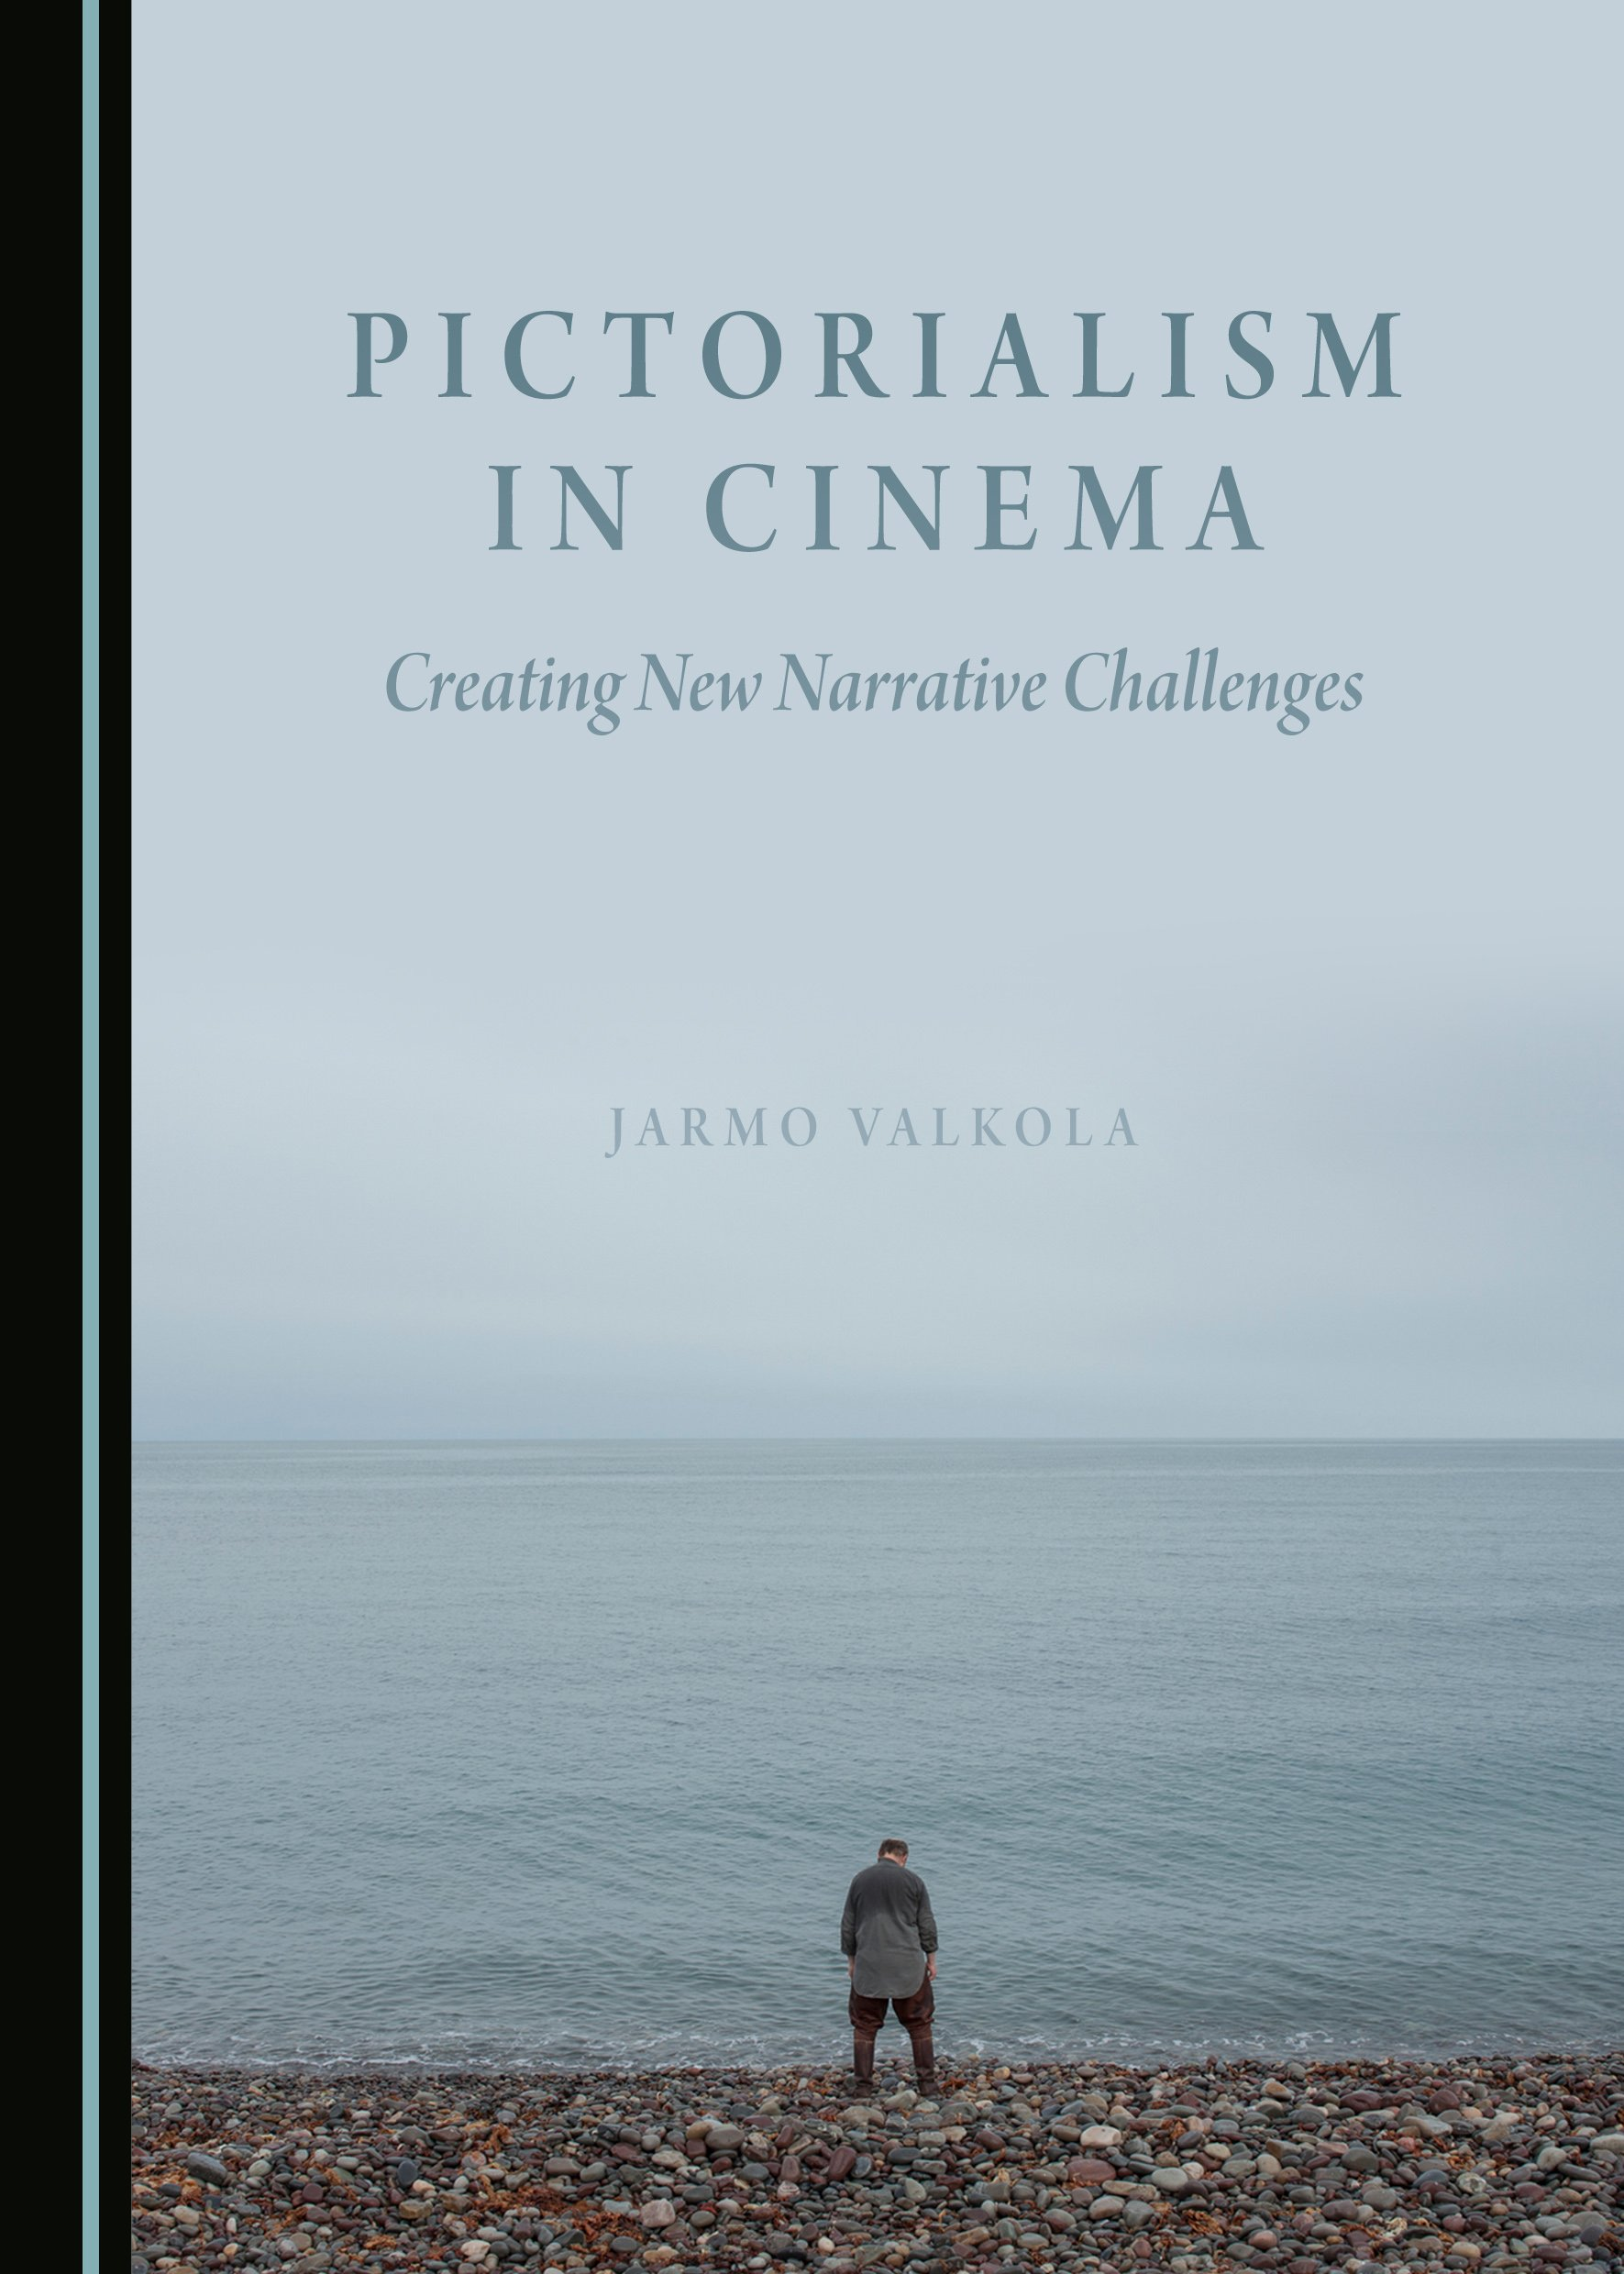 Pictorialism in Cinema: Creating New Narrative Challenges